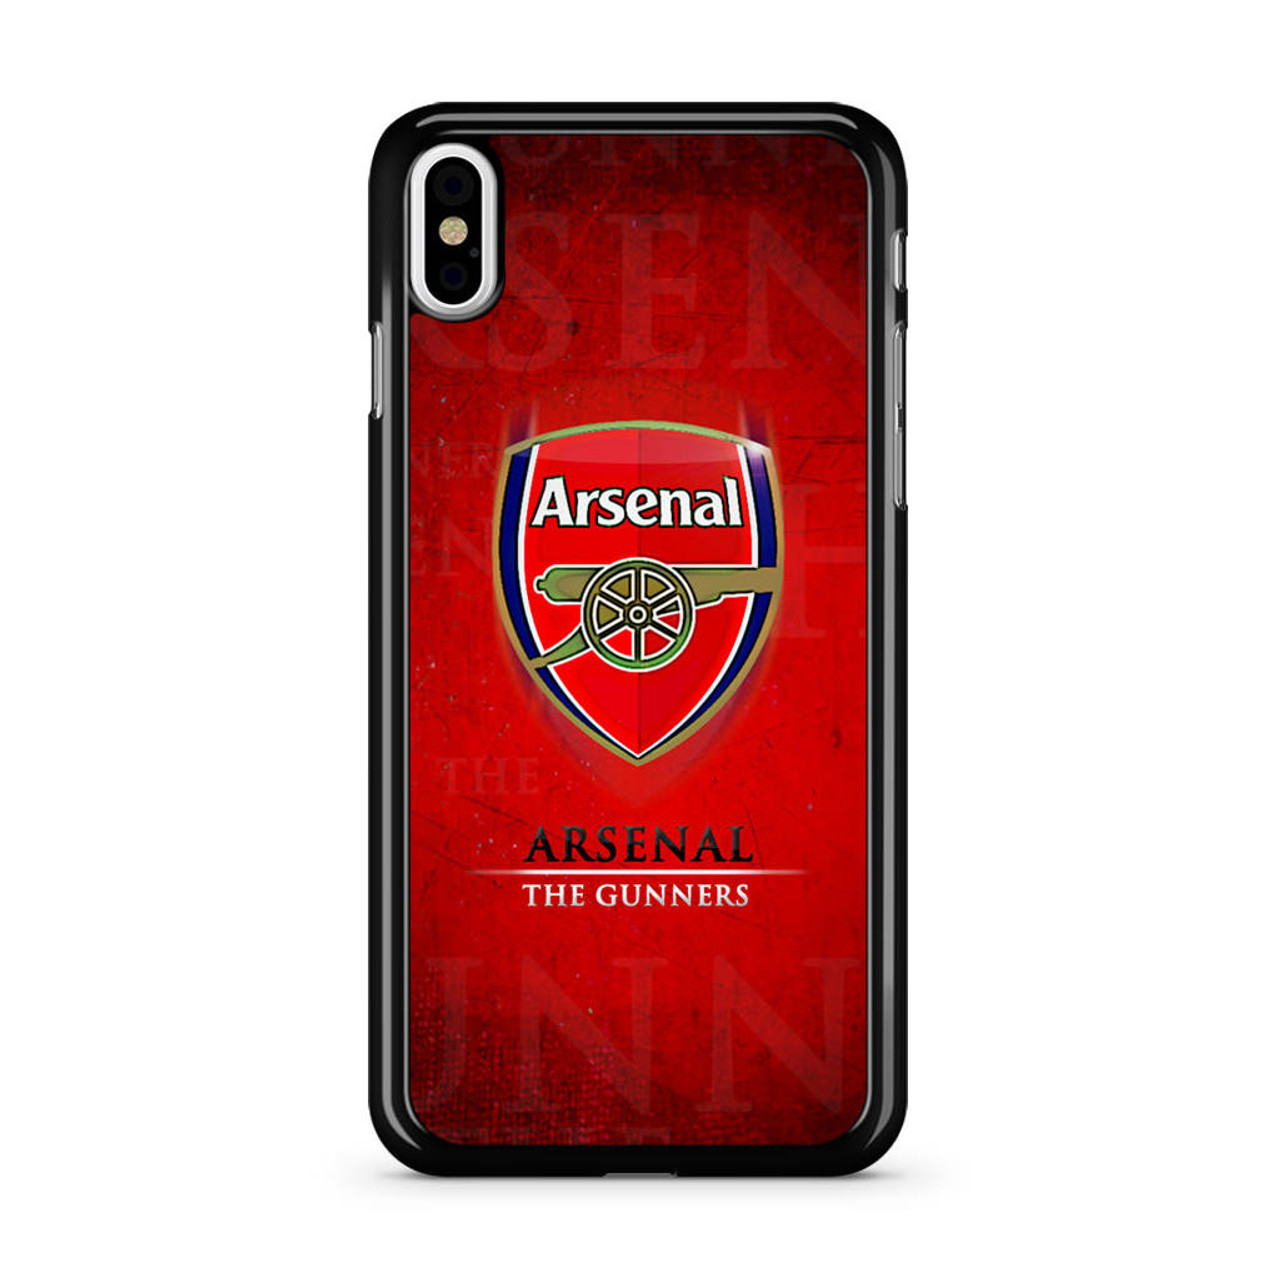 newest b10b3 fd0ef Arsenal The Gunners iPhone XS Max Case